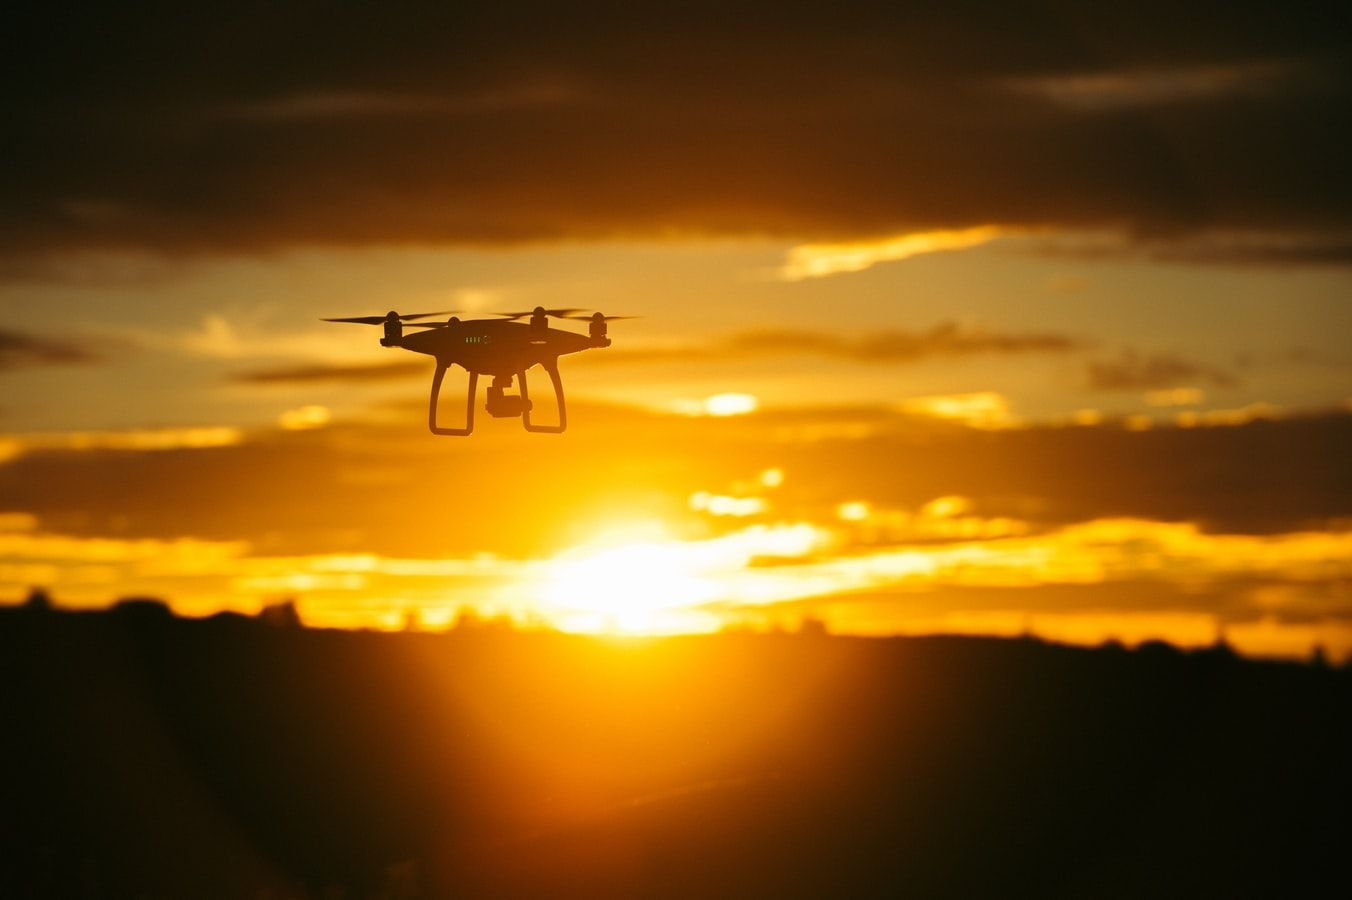 drone flying in sunset